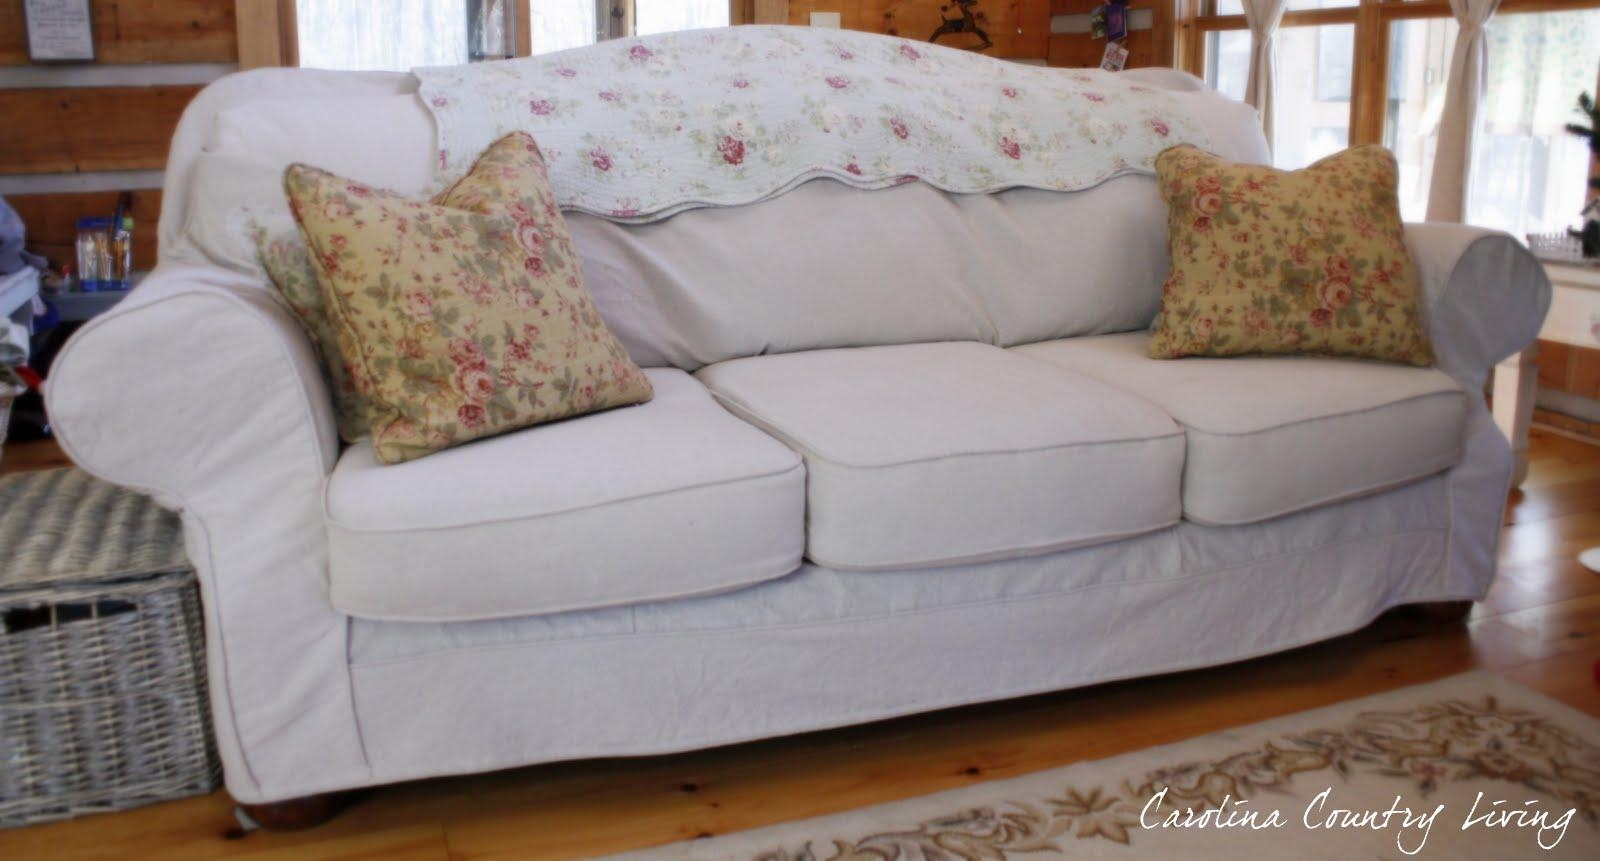 Carolina Country Living: Drop Cloth Sofa Slipcover Intended For Camel Back Couch Slipcovers (Image 3 of 20)